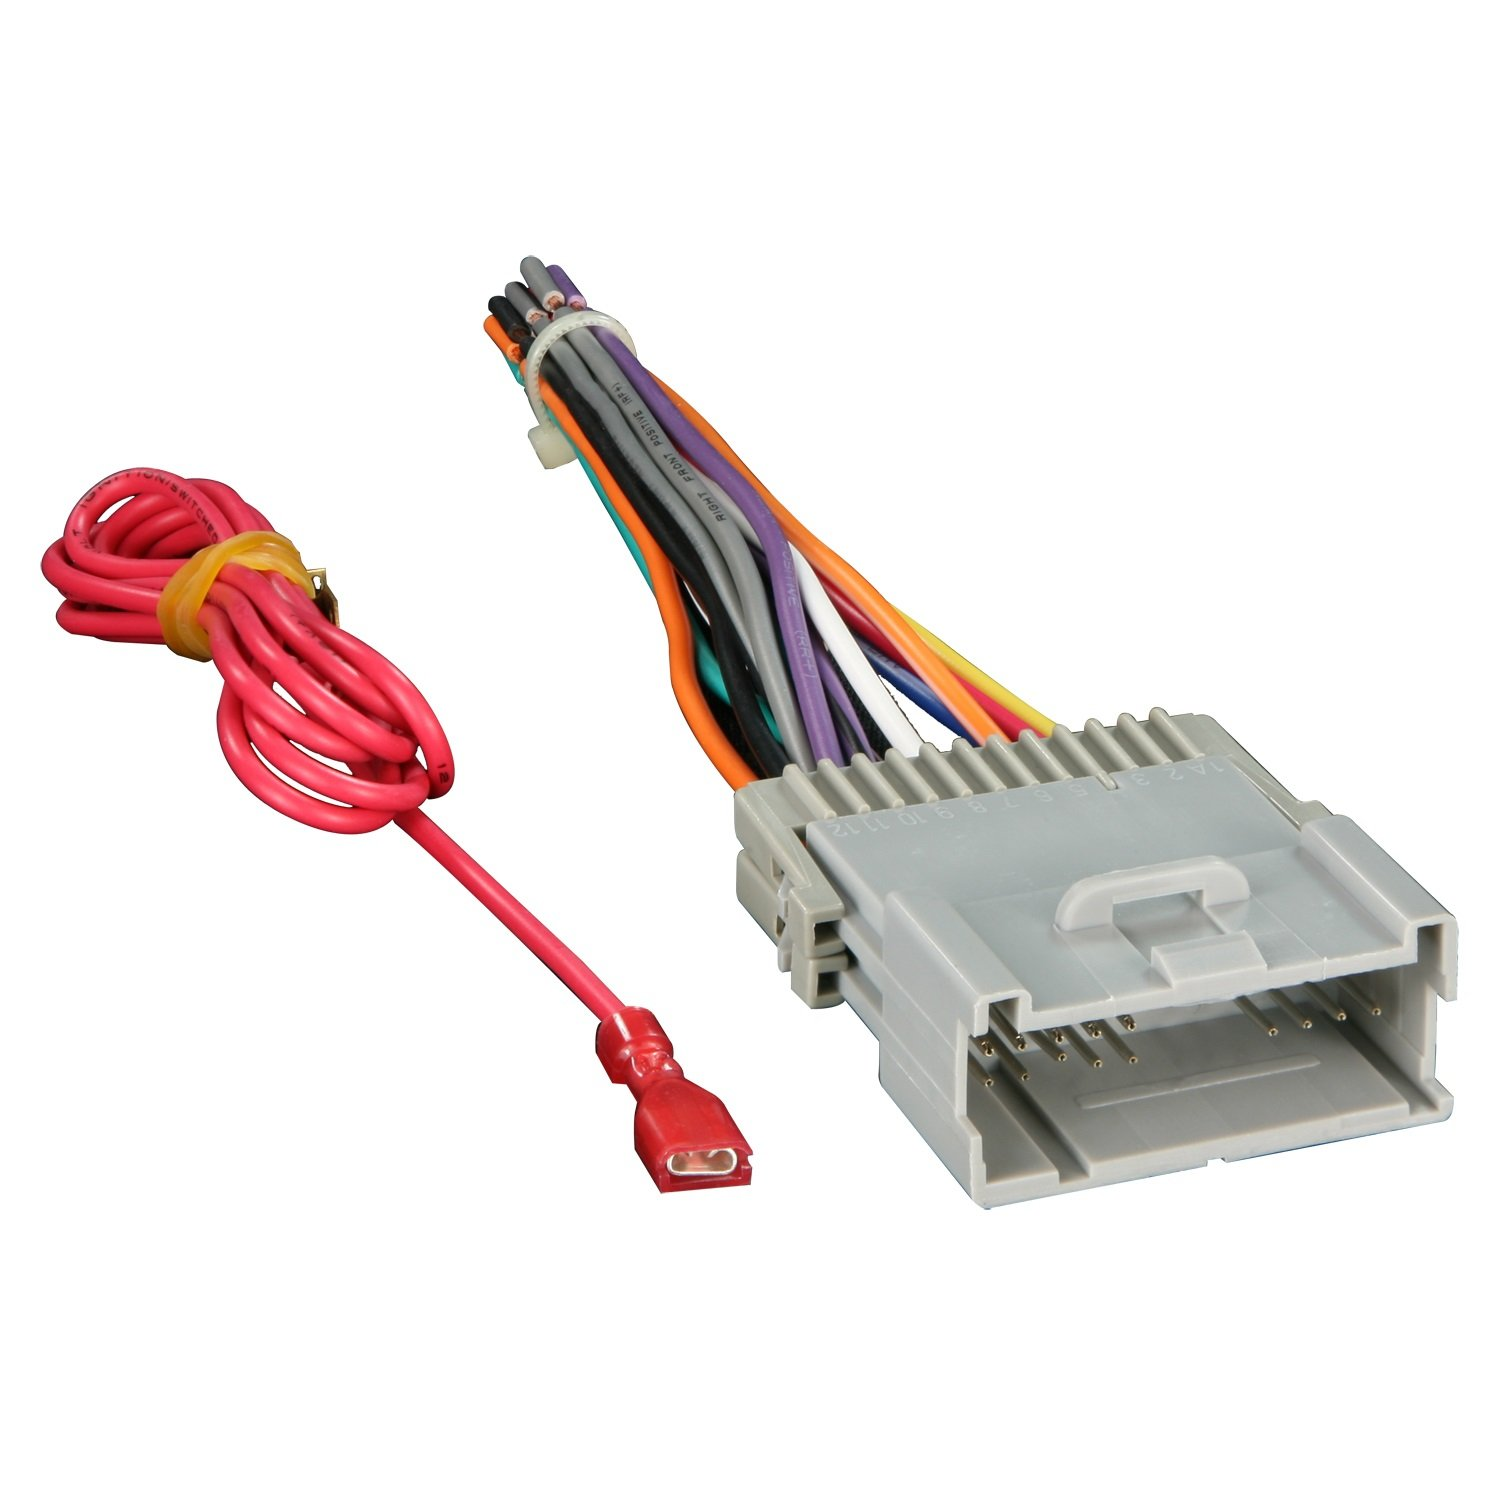 61eewxp9orL._SL1500_ amazon com metra 70 2003 radio wiring harness for gm 98 08 gmc wiring harness at fashall.co